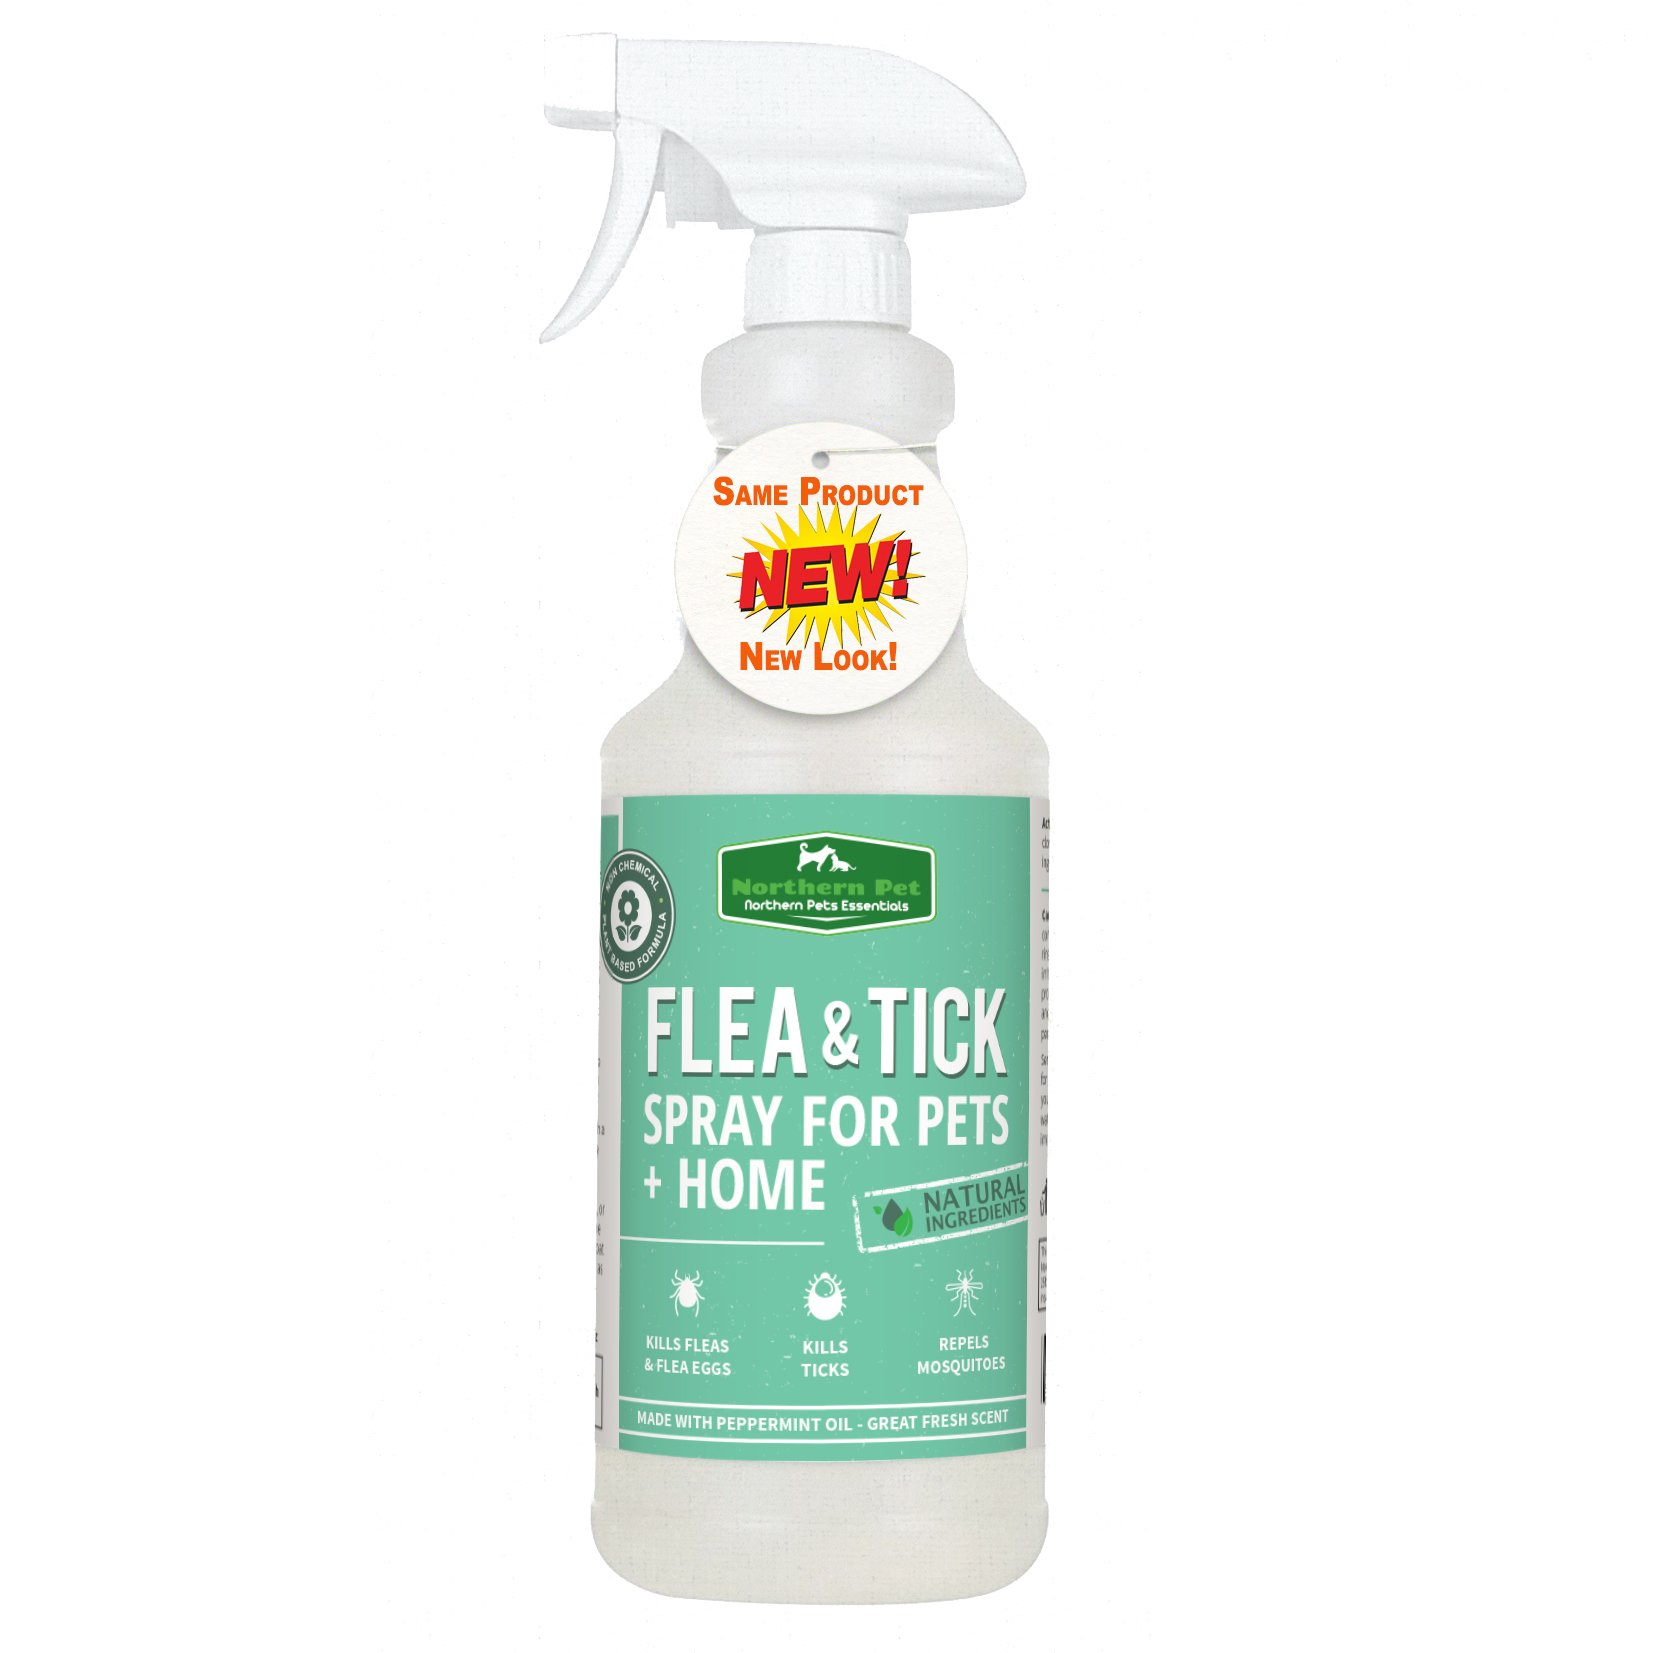 Natural Flea & Tick Control Spray For Dogs and Home Use - Kills Fleas, Ticks and Mosquitoes on Contact - by Northern Pet (32 OZ)